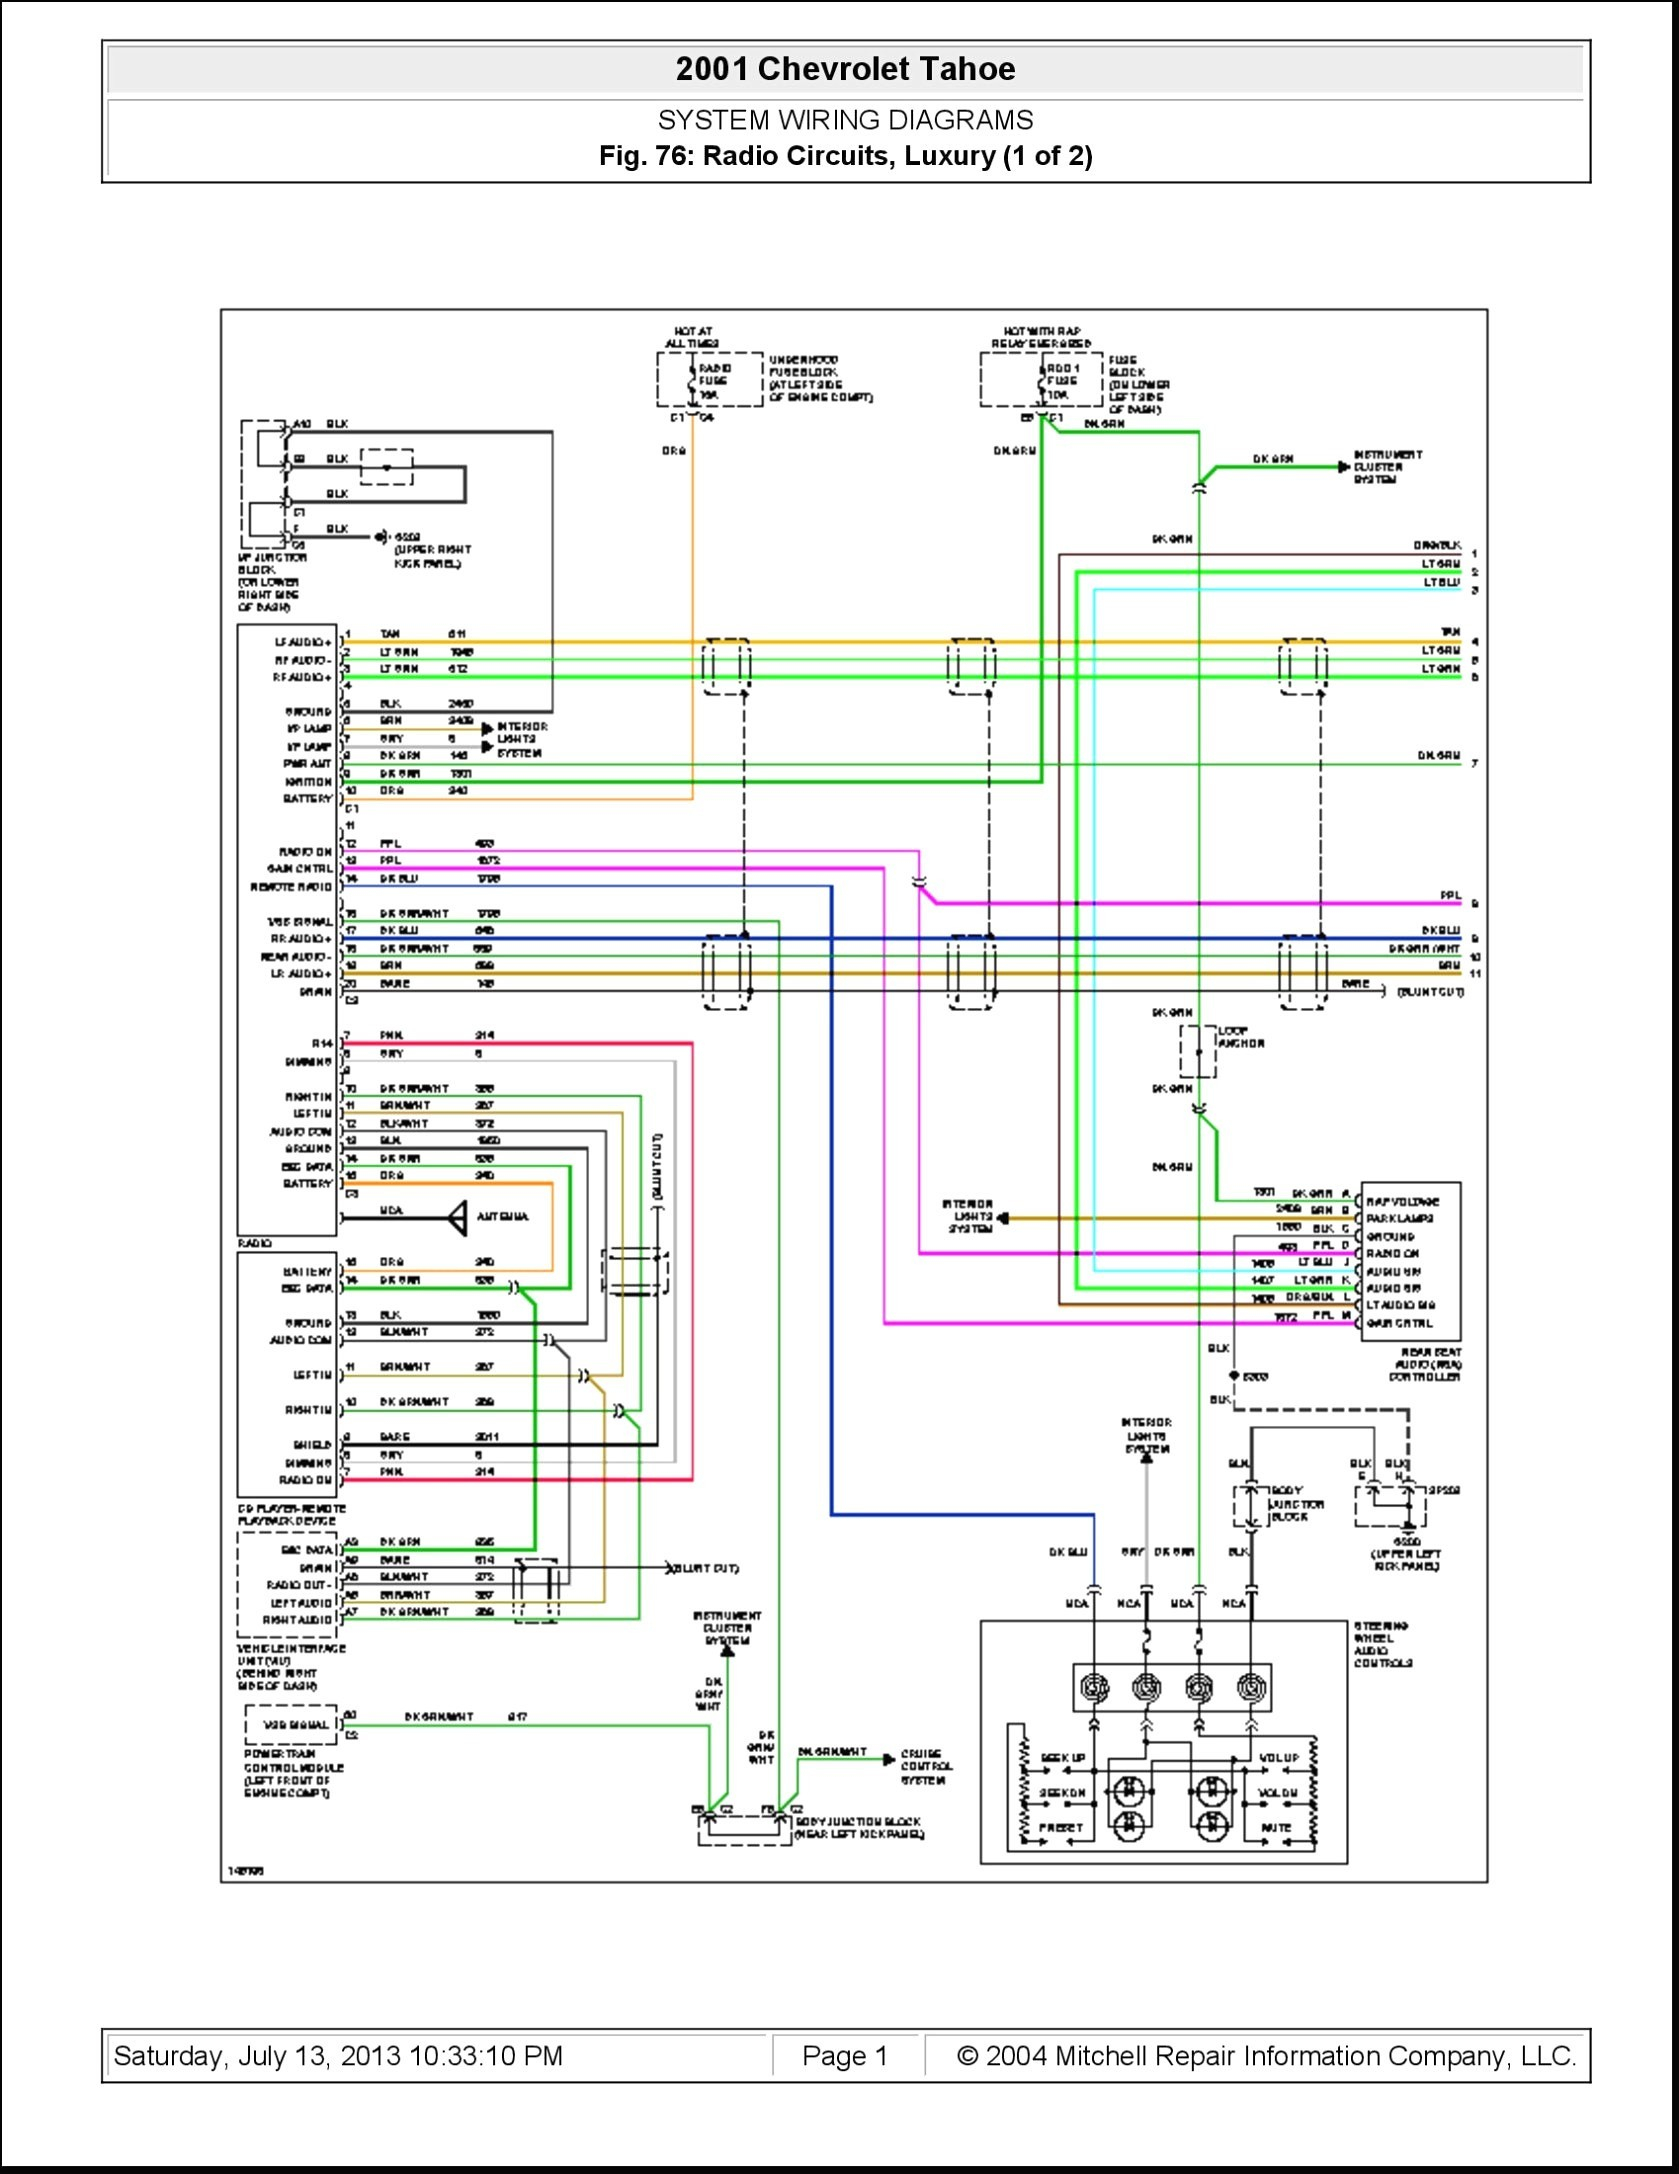 hight resolution of 95 camaro radio wiring diagram wiring diagram centrewiring diagram for 1998 chevrolet tahoe wiring diagram inside1998